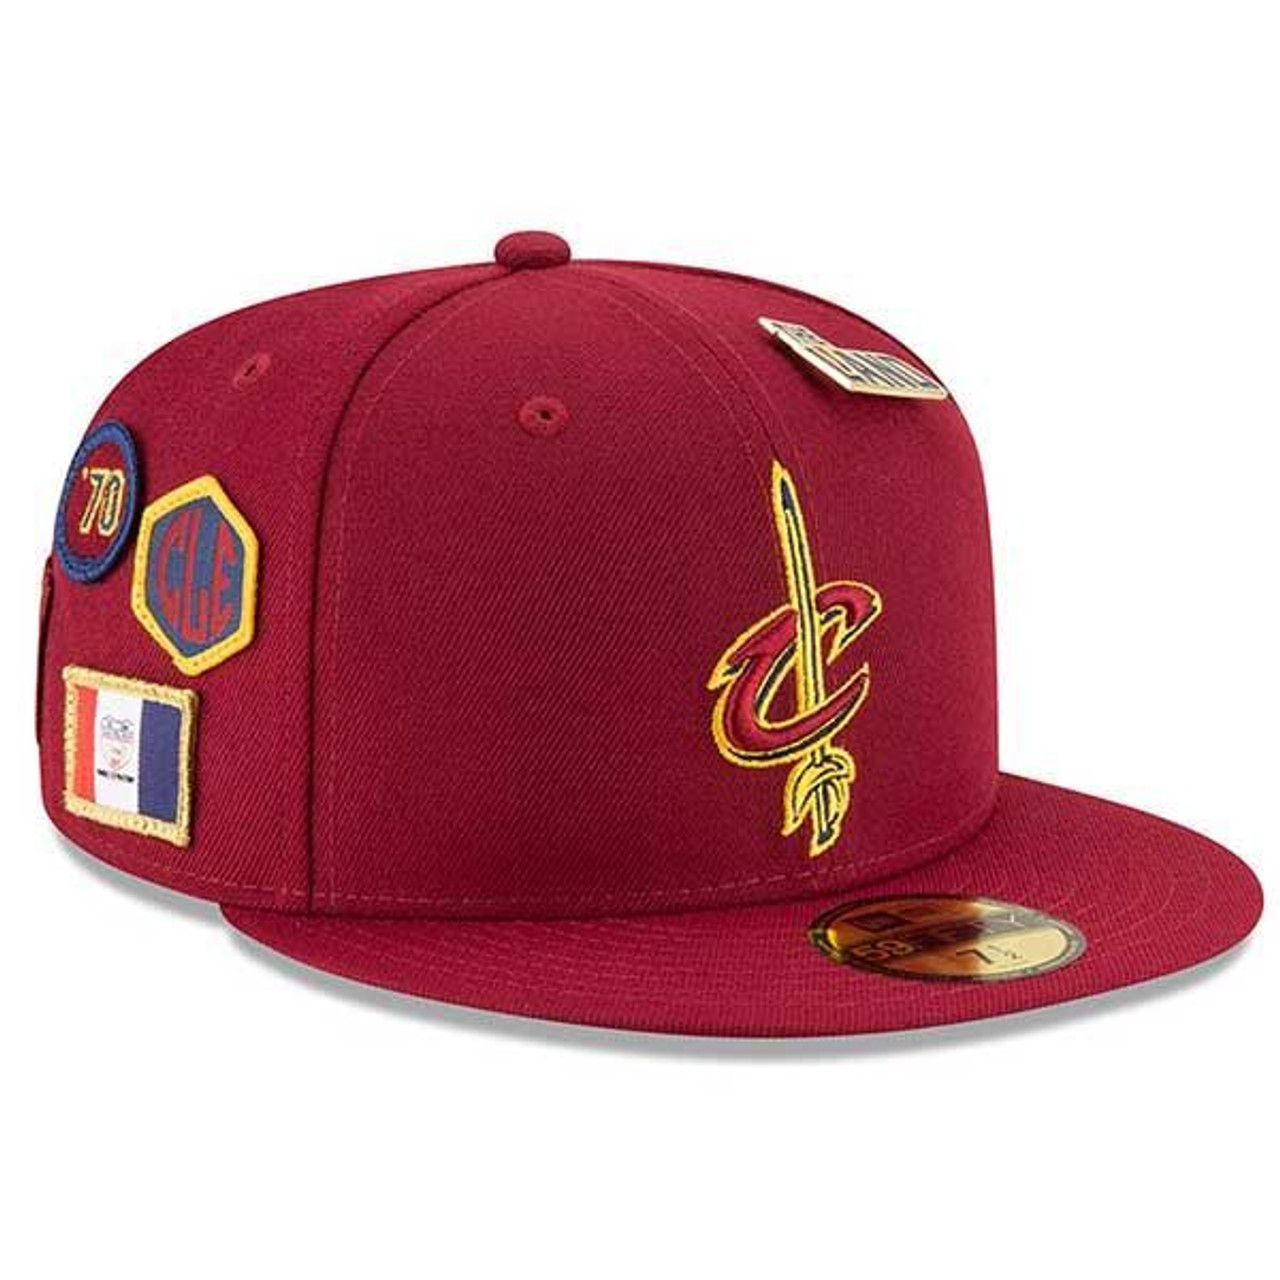 450ff6a79d3 18-19 Draft Series Fitted Wine Cap - Cleveland Cavaliers